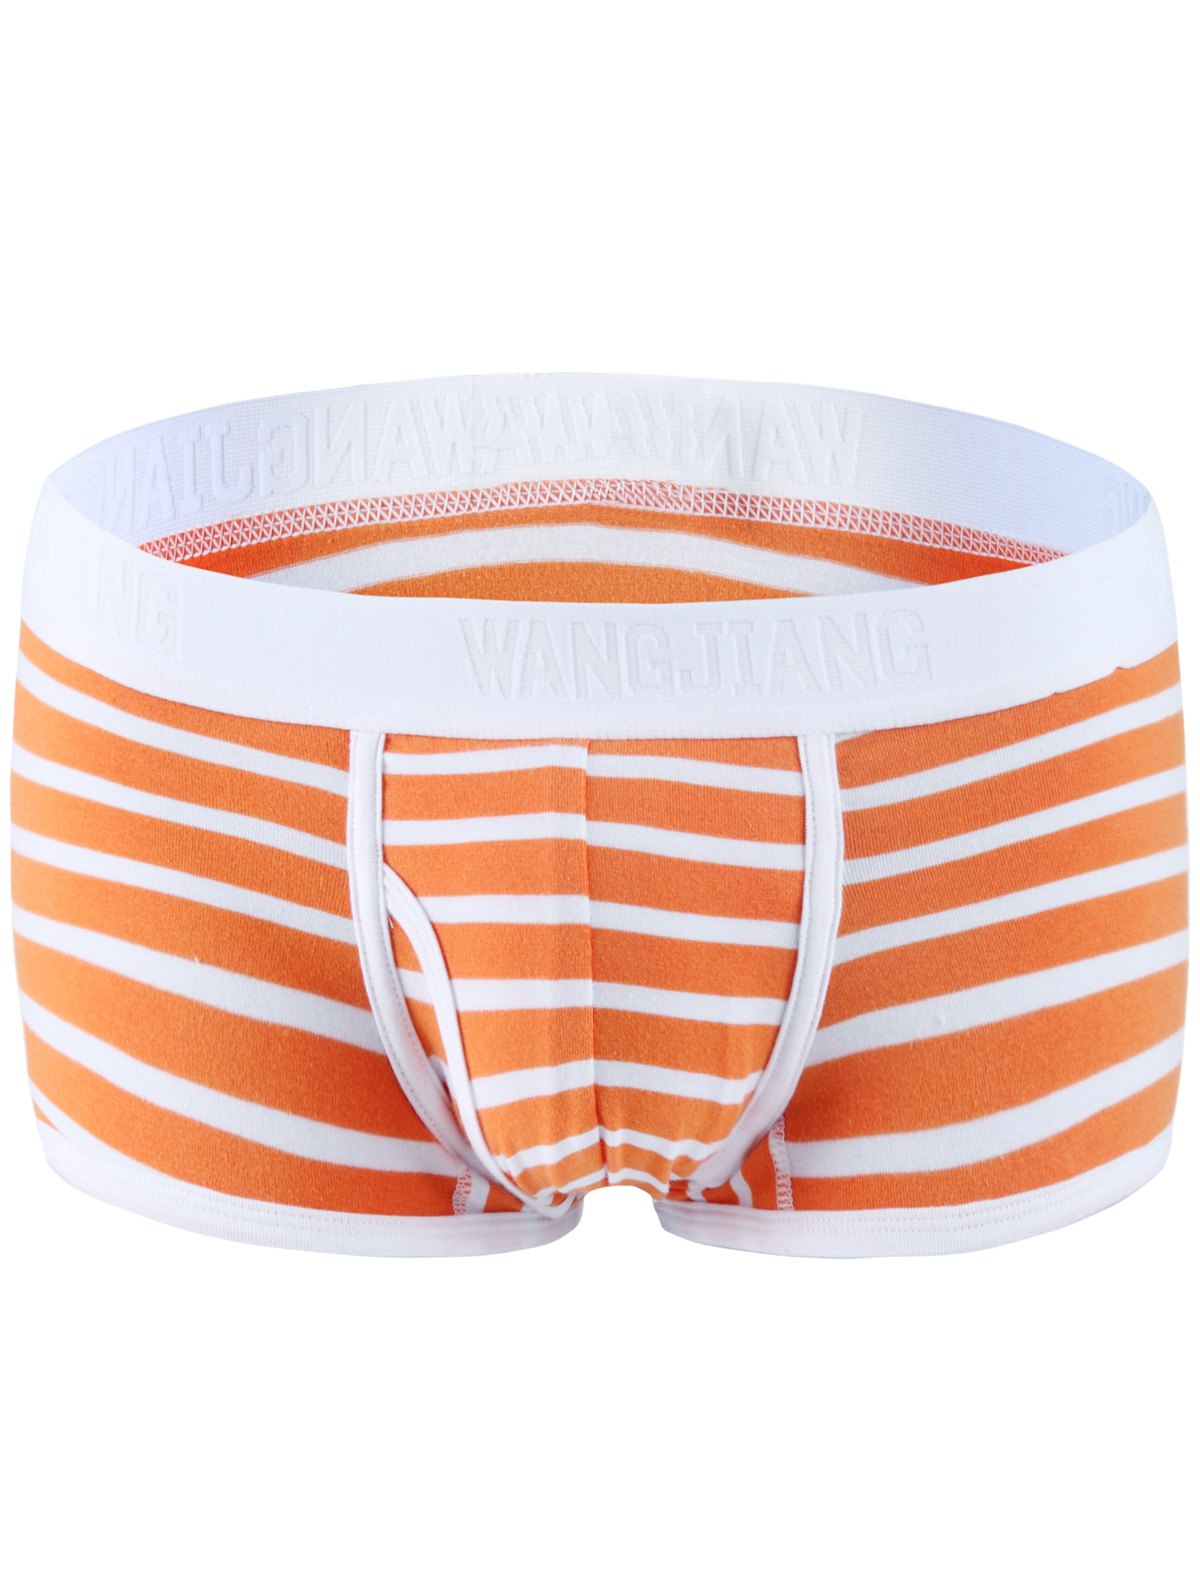 Color Block Spliced Classic Striped Boxer Underwear For Men - ORANGE / WHITE S